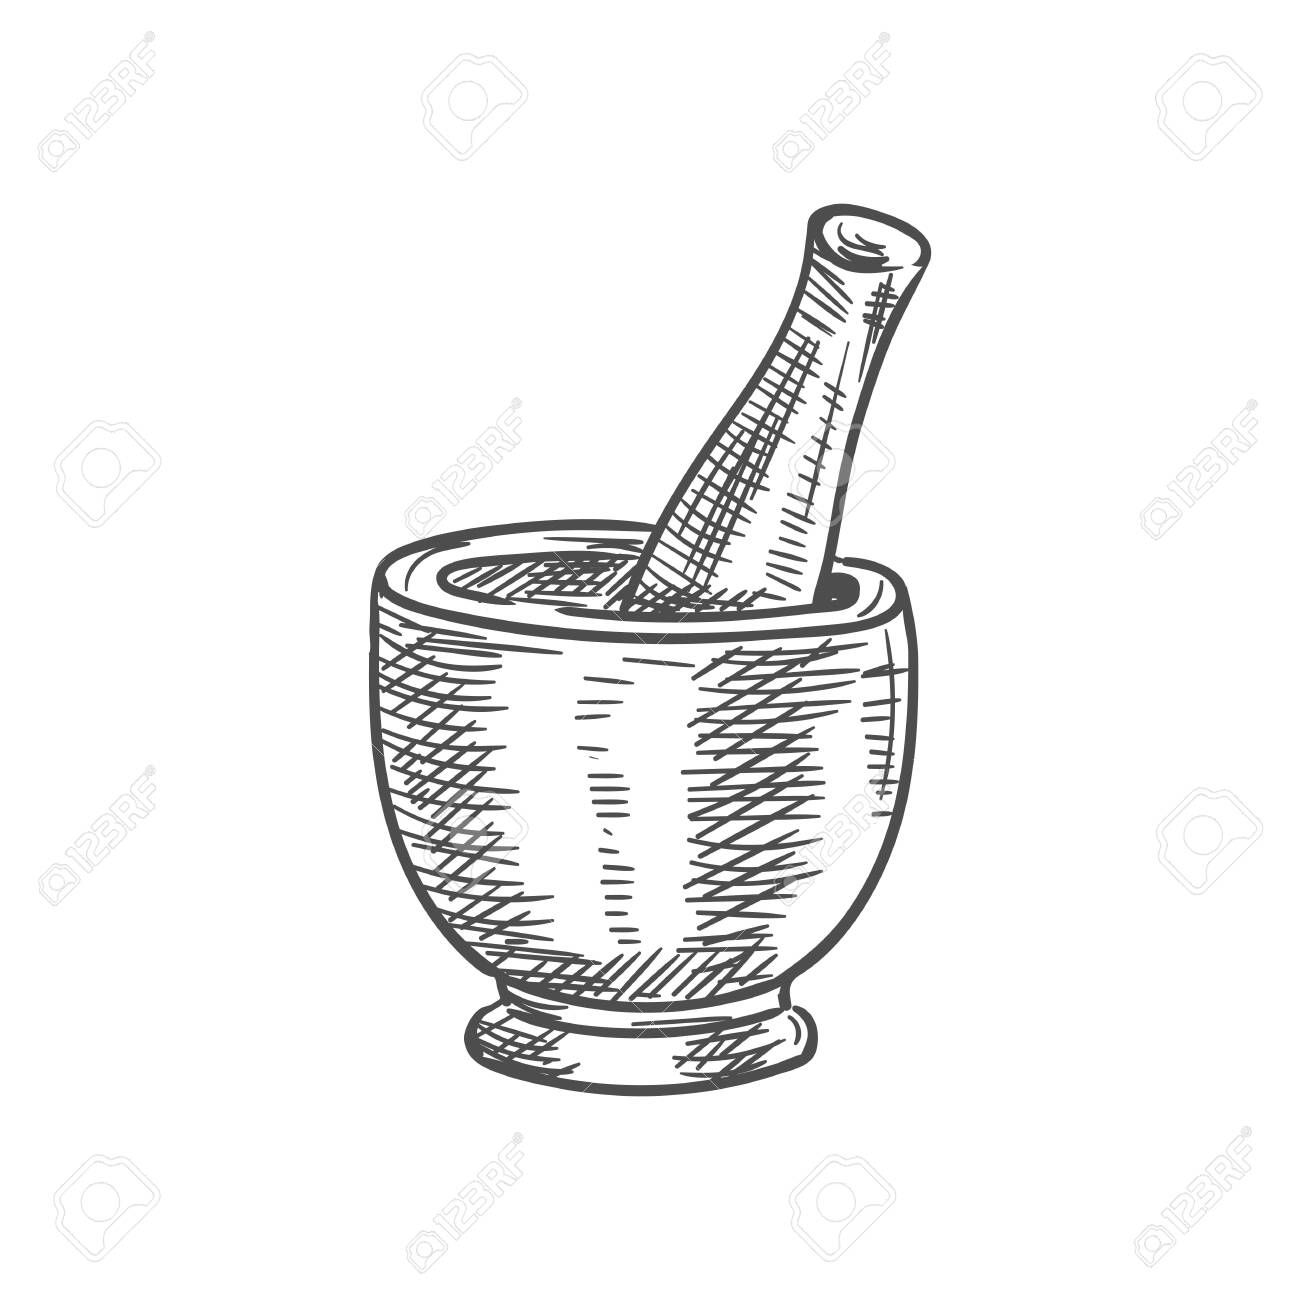 Mortar and pestle isolated kitchen pounder stamp sketch. Vector pharmacy wood grinding tool - 144213911